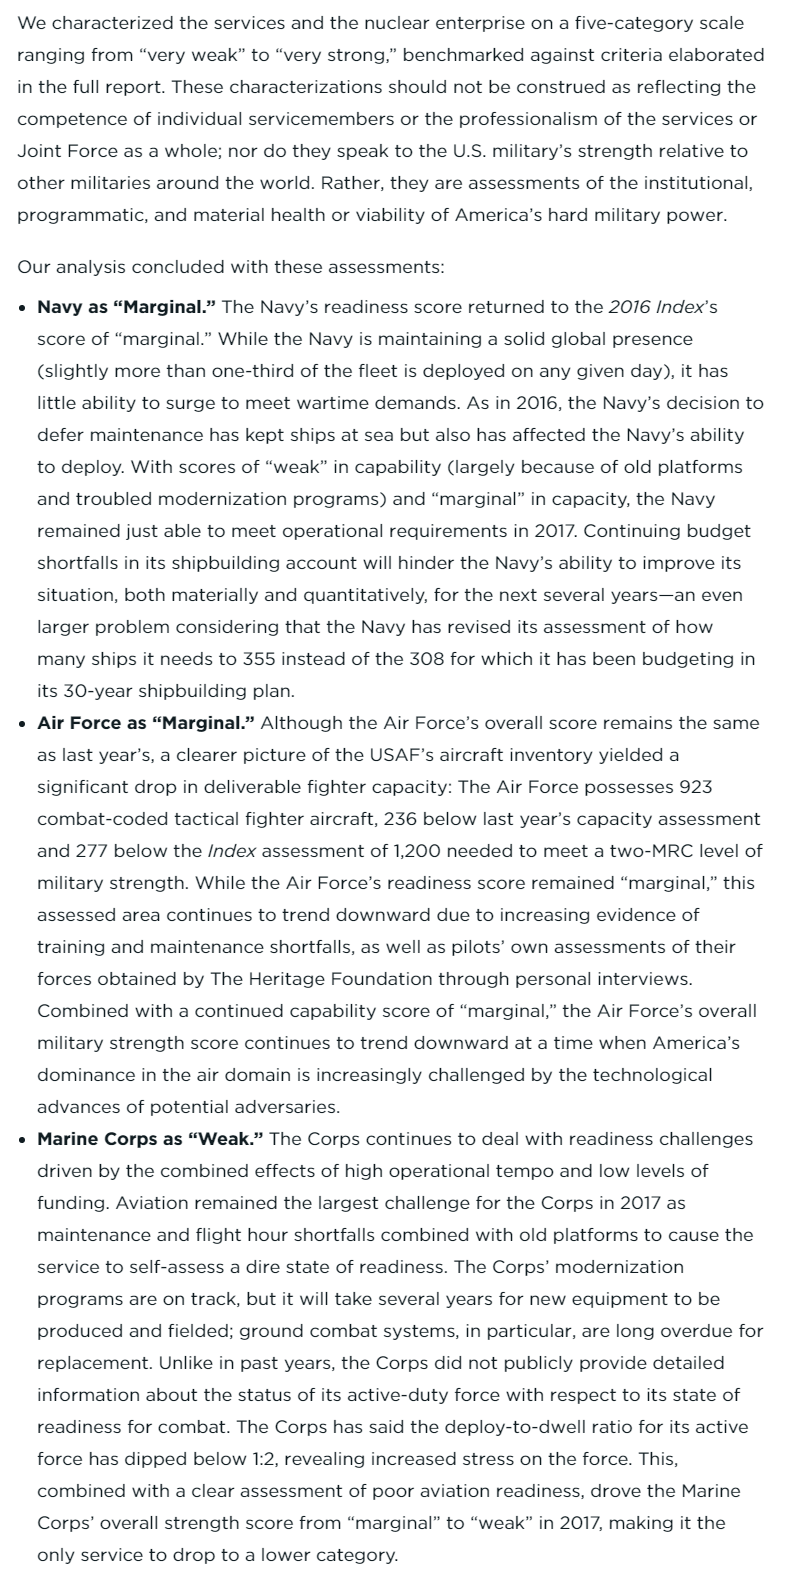 Heritage 2018 Index of U.S. Mil Strength - ExSummary - Part 1.png